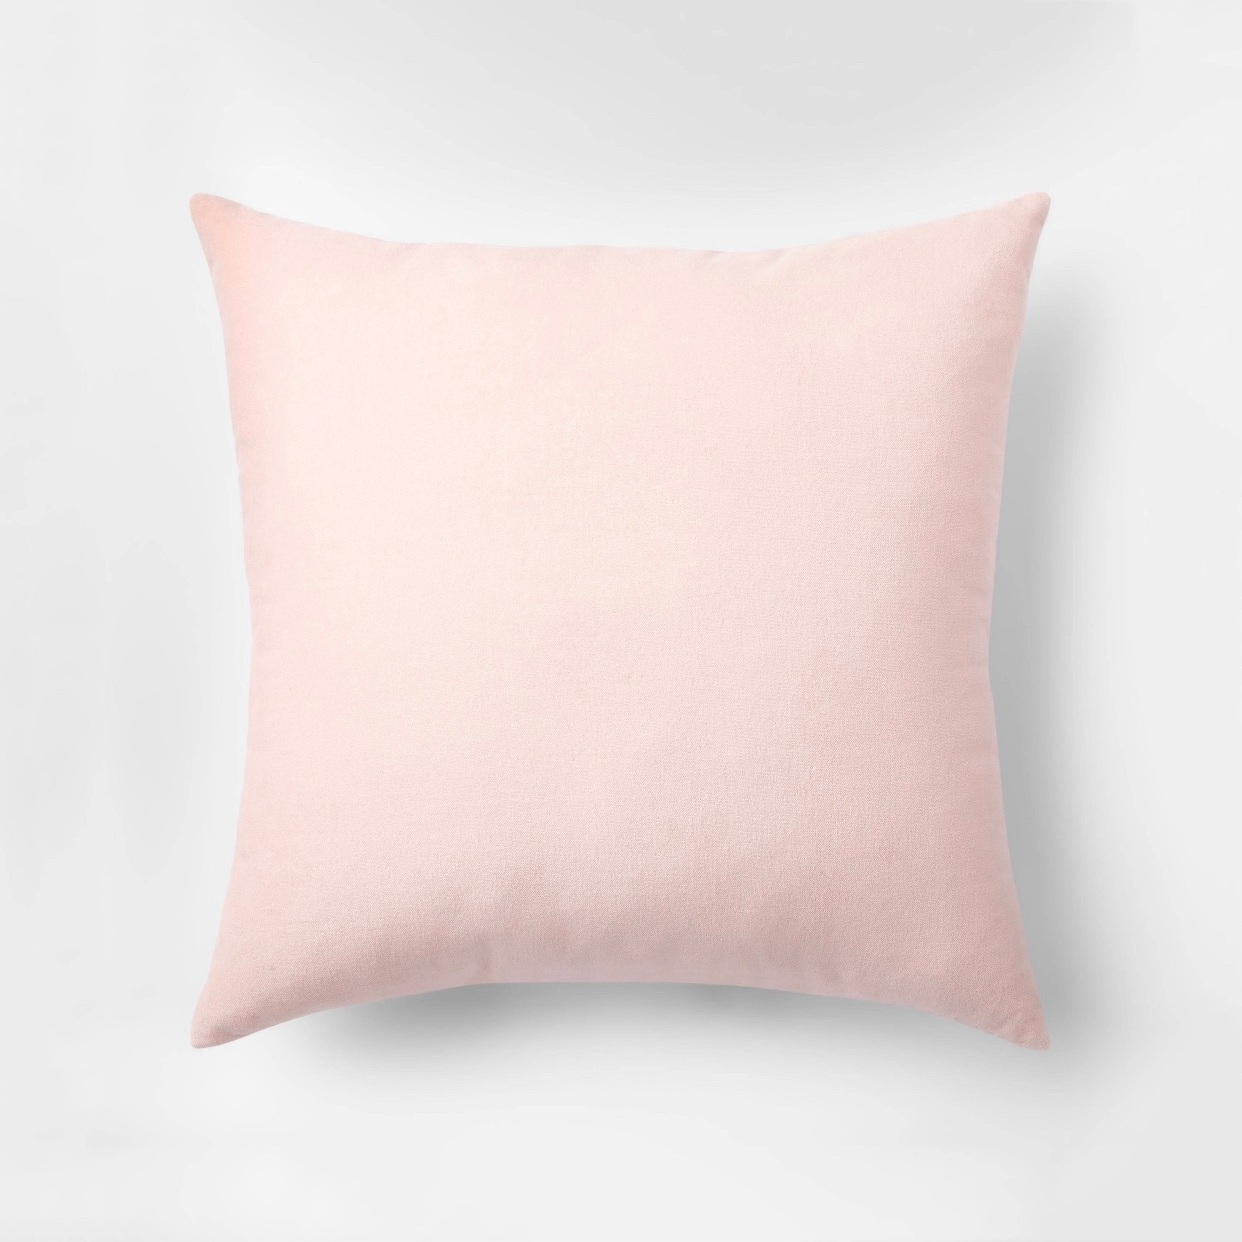 - The perfect blush throw pillow and for under $10!Find it here.